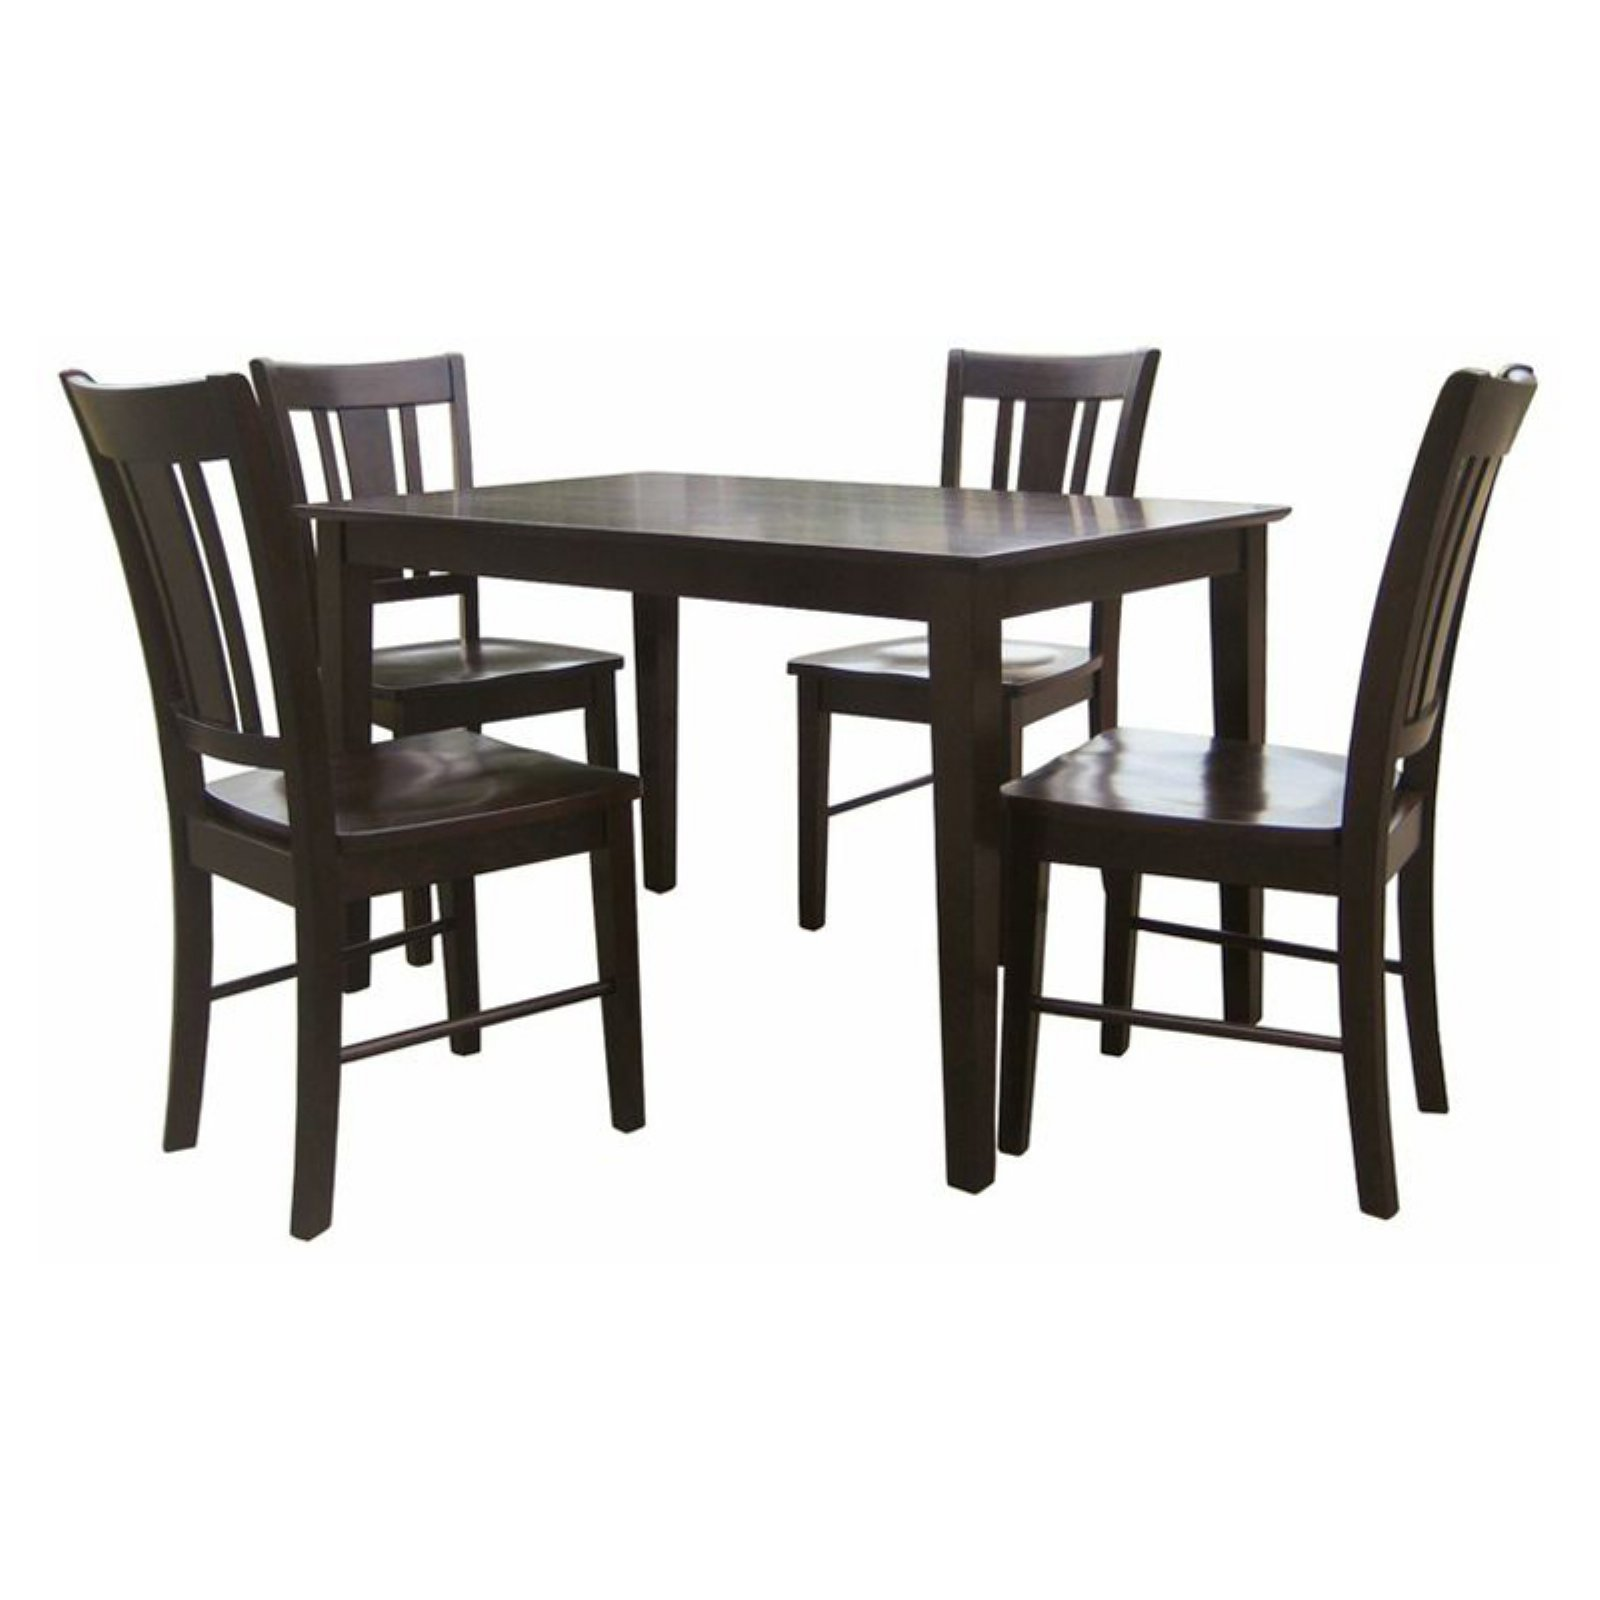 International Concepts Samberg 5 Piece Dining Table Set With 4 San Remo  Chairs   Rich Mocha